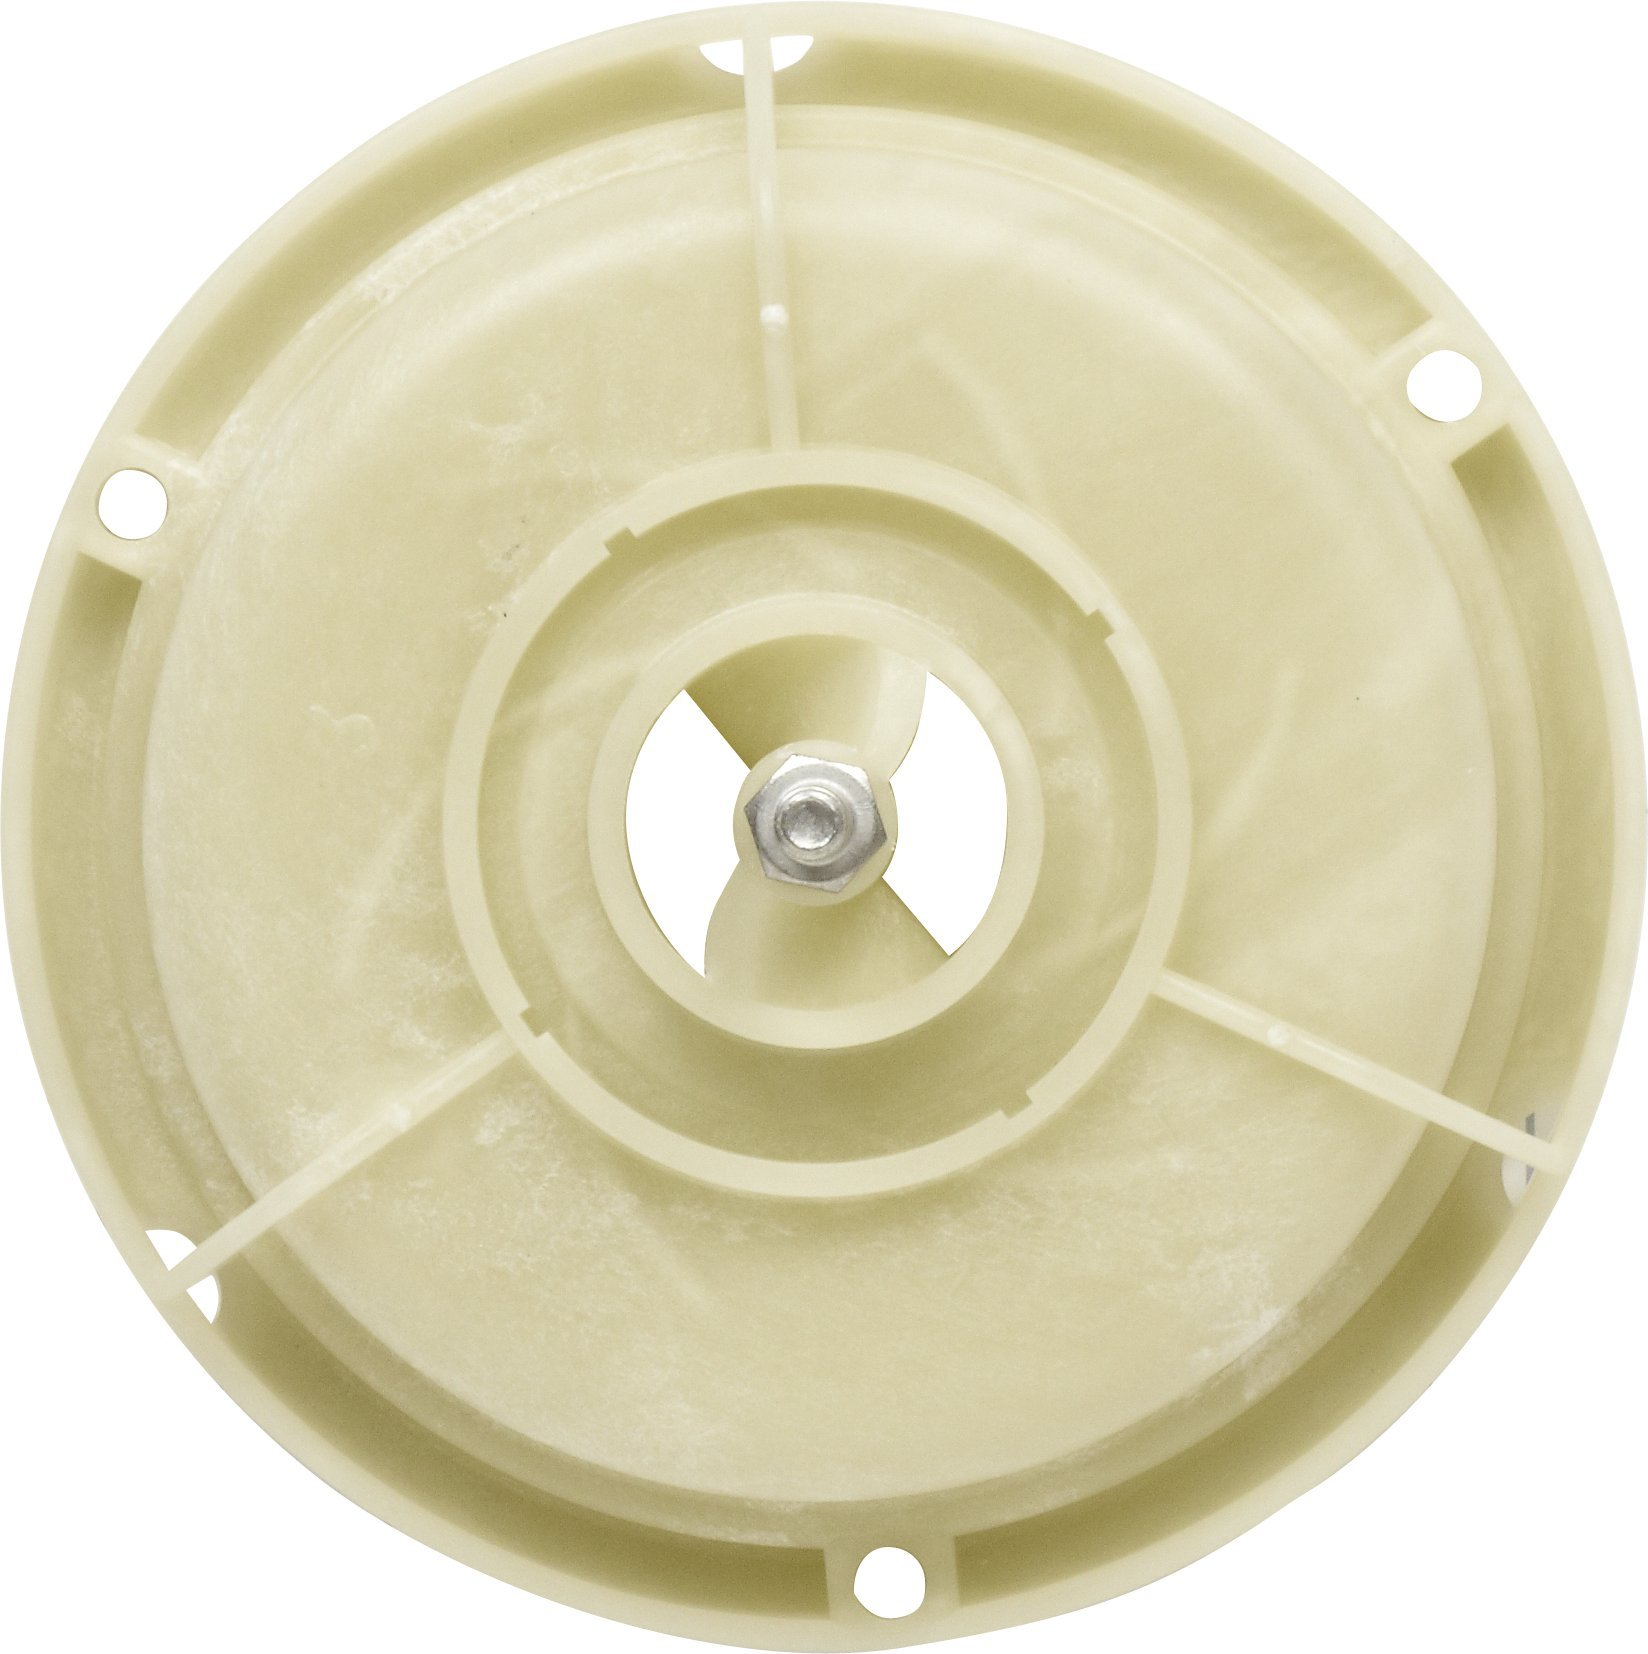 Whirlpool 6-917075 Discharge Housing